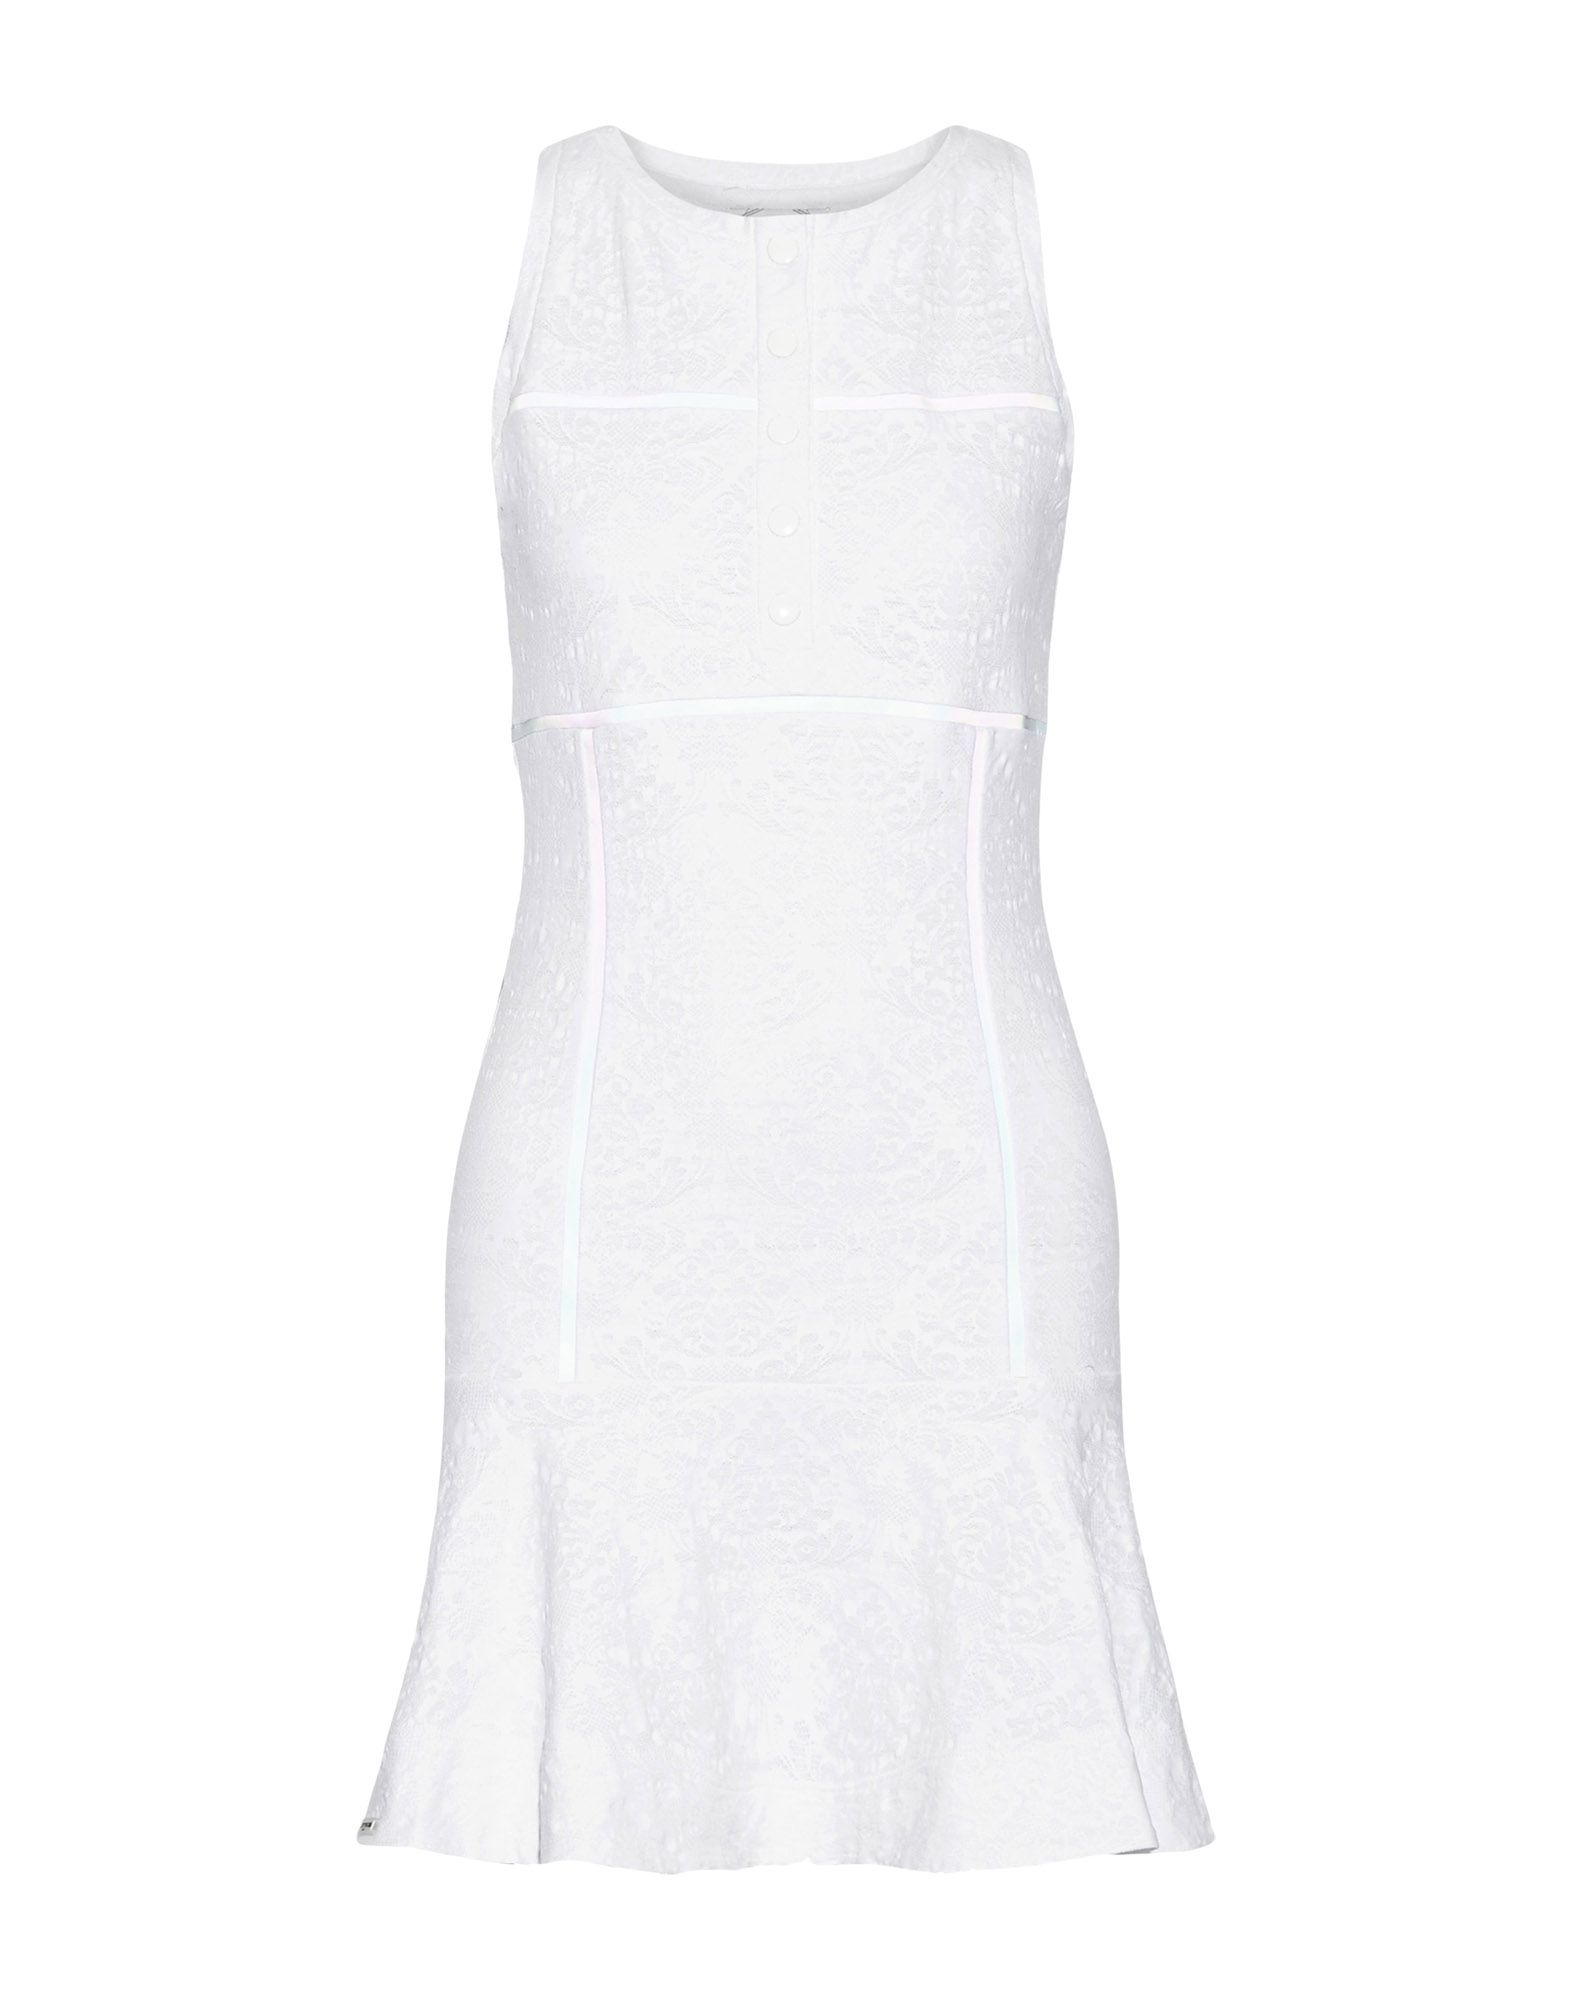 L'ETOILE SPORT Short Dress in White